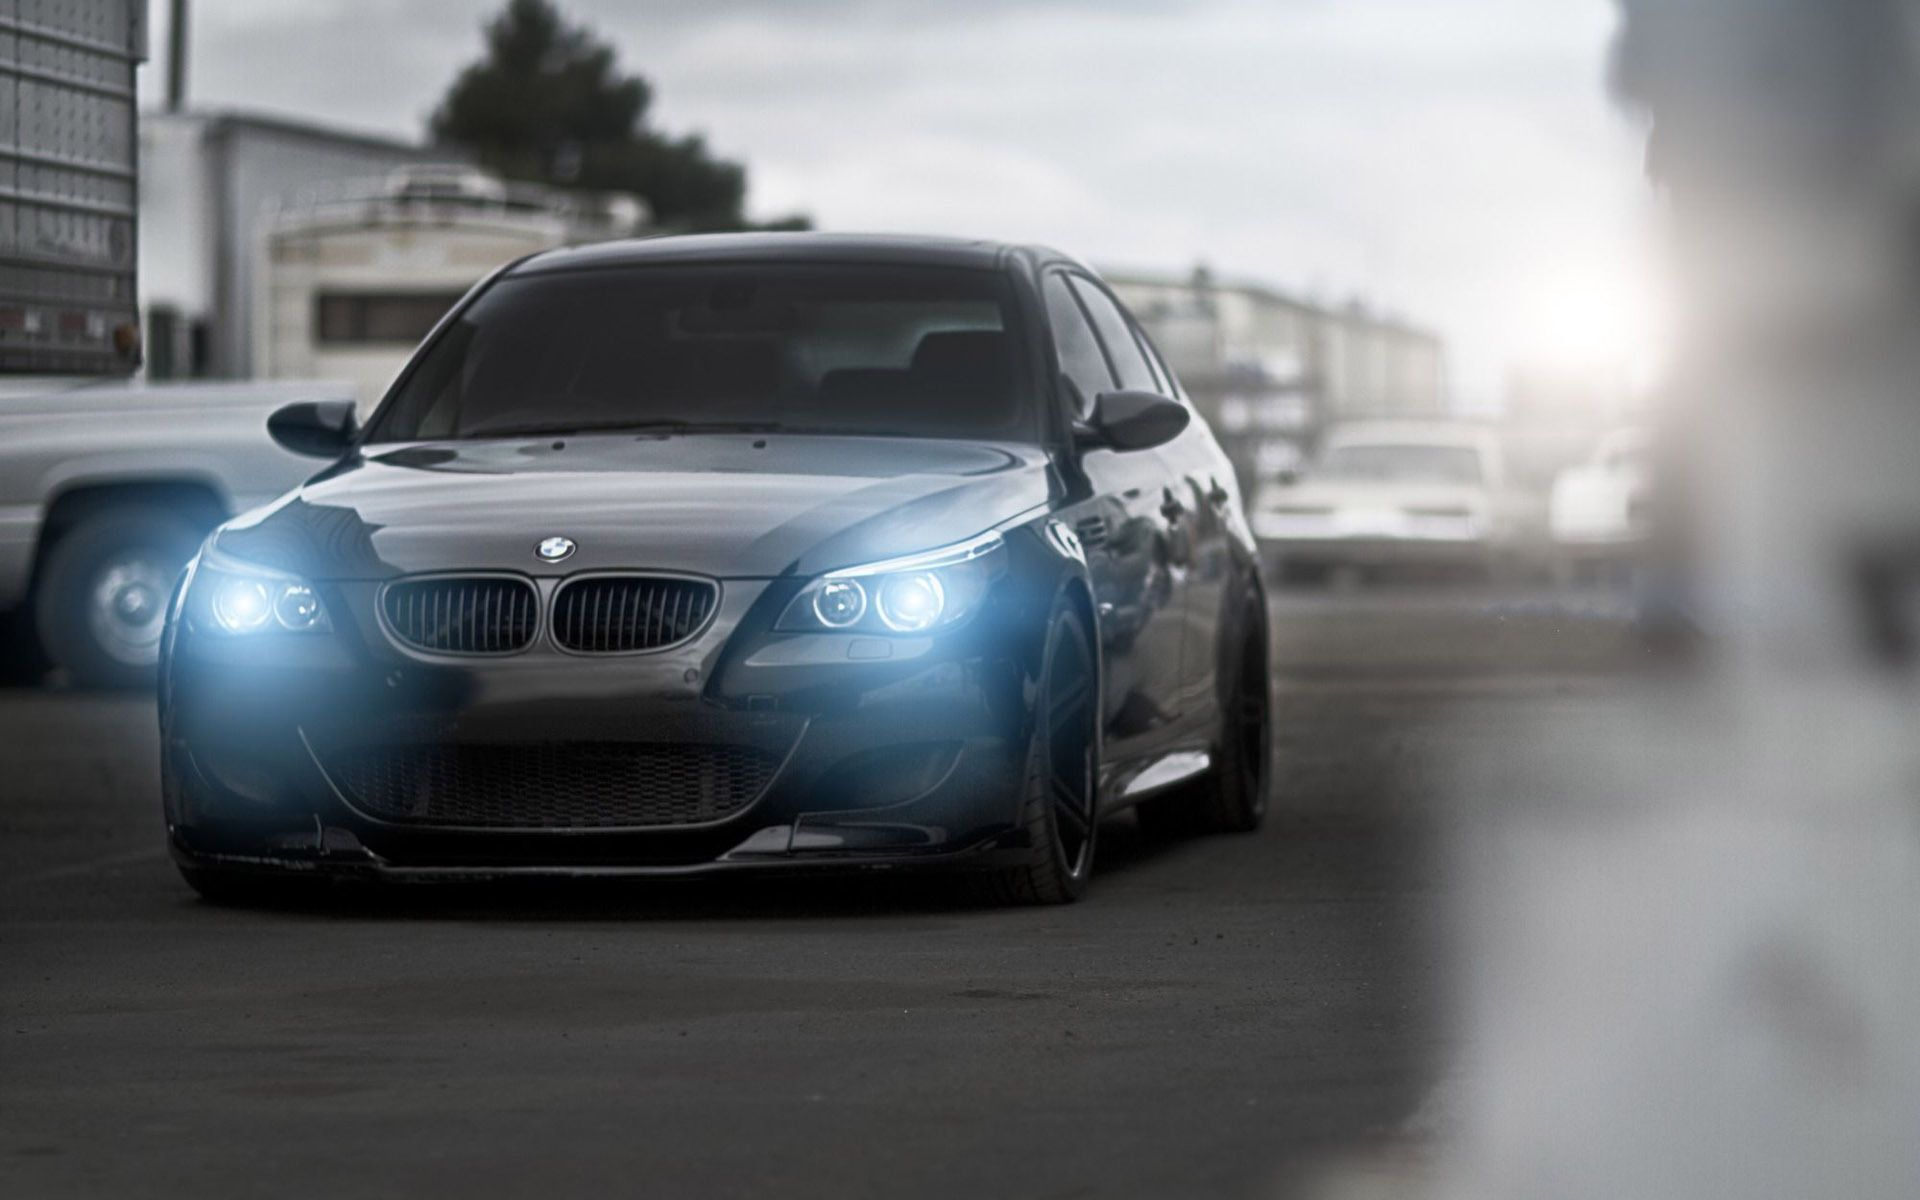 Collection of Bmw M5 Wallpaper on HDWallpapers